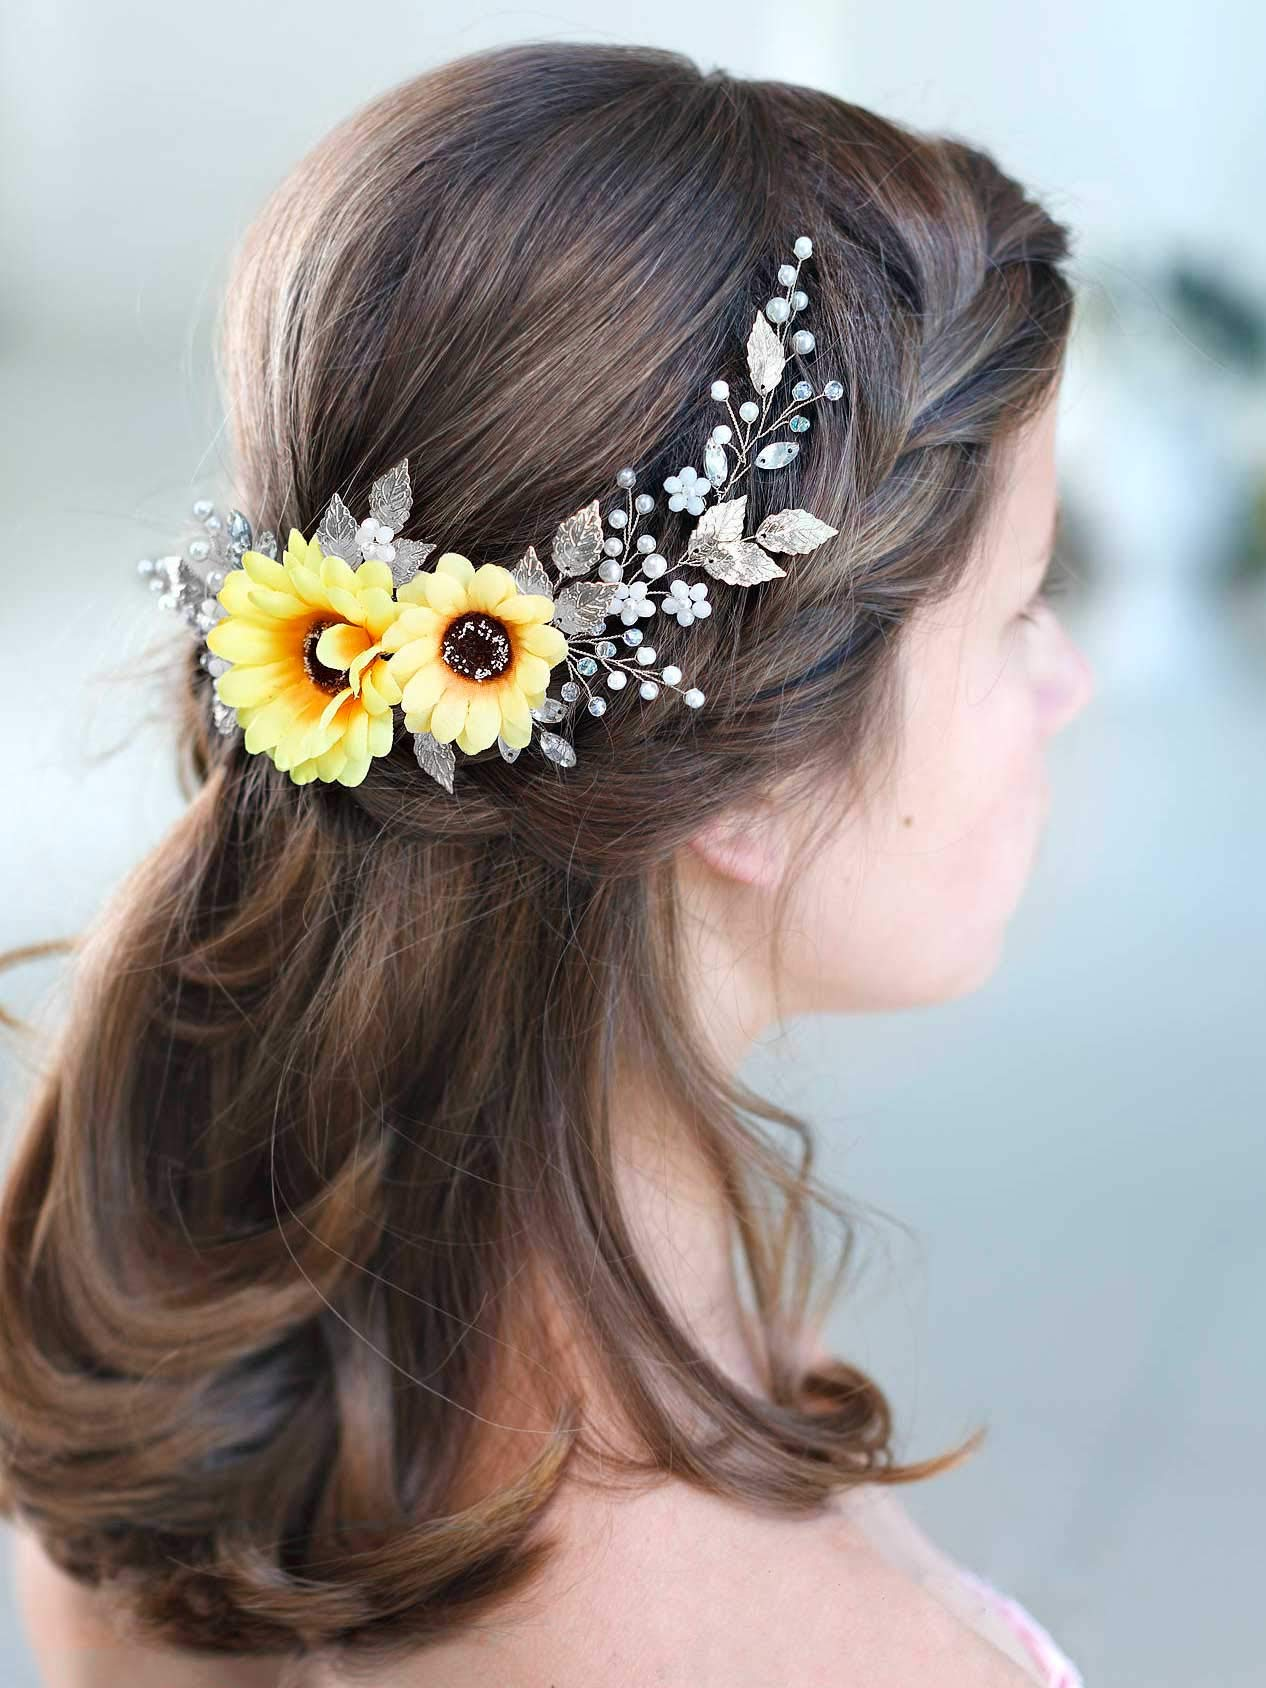 Accessory For Hair: Amazon.com: Aukmla Bride Wedding Hair Pins Sunflower Hair